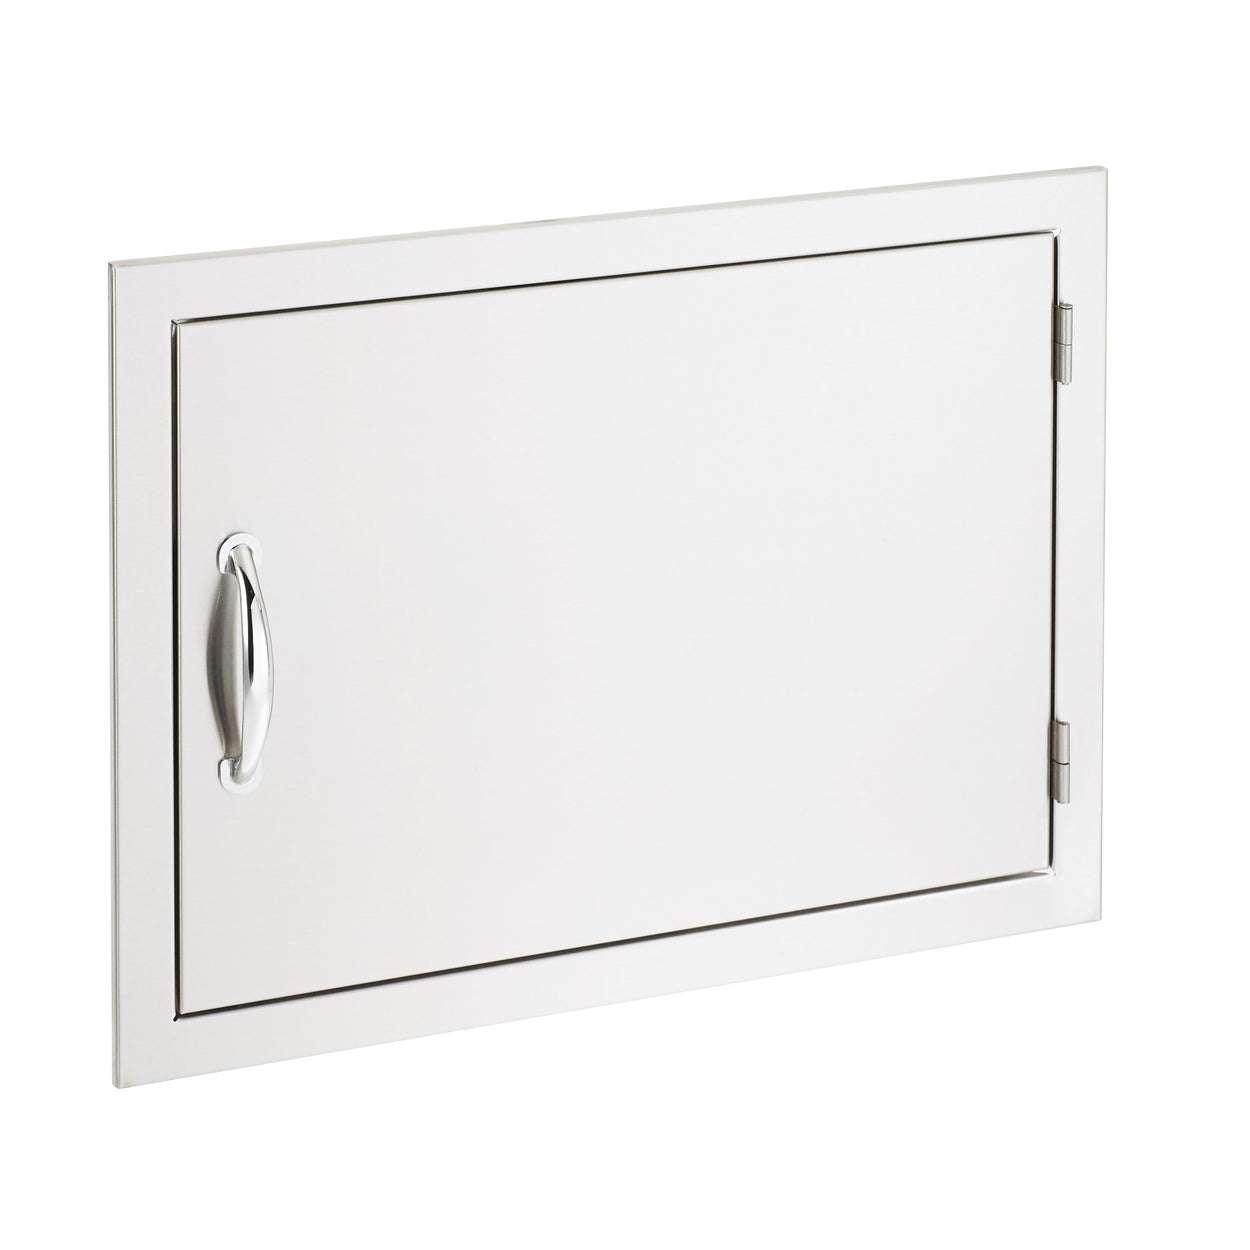 "27x20"" Horizontal Access Door"